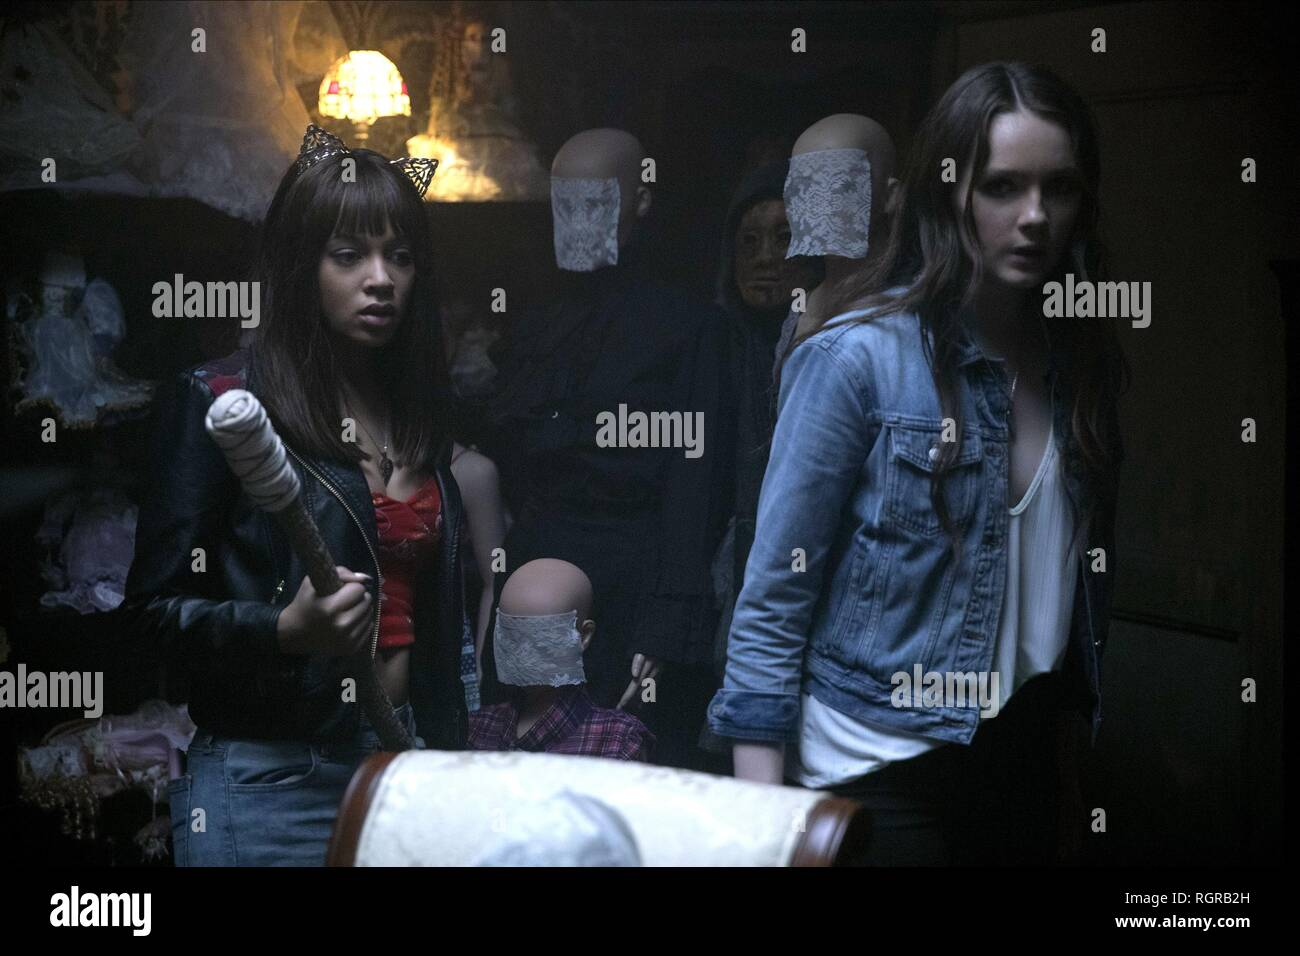 REIGN EDWARDS & AMY FORSYTH HELL FEST (2018) - Stock Image